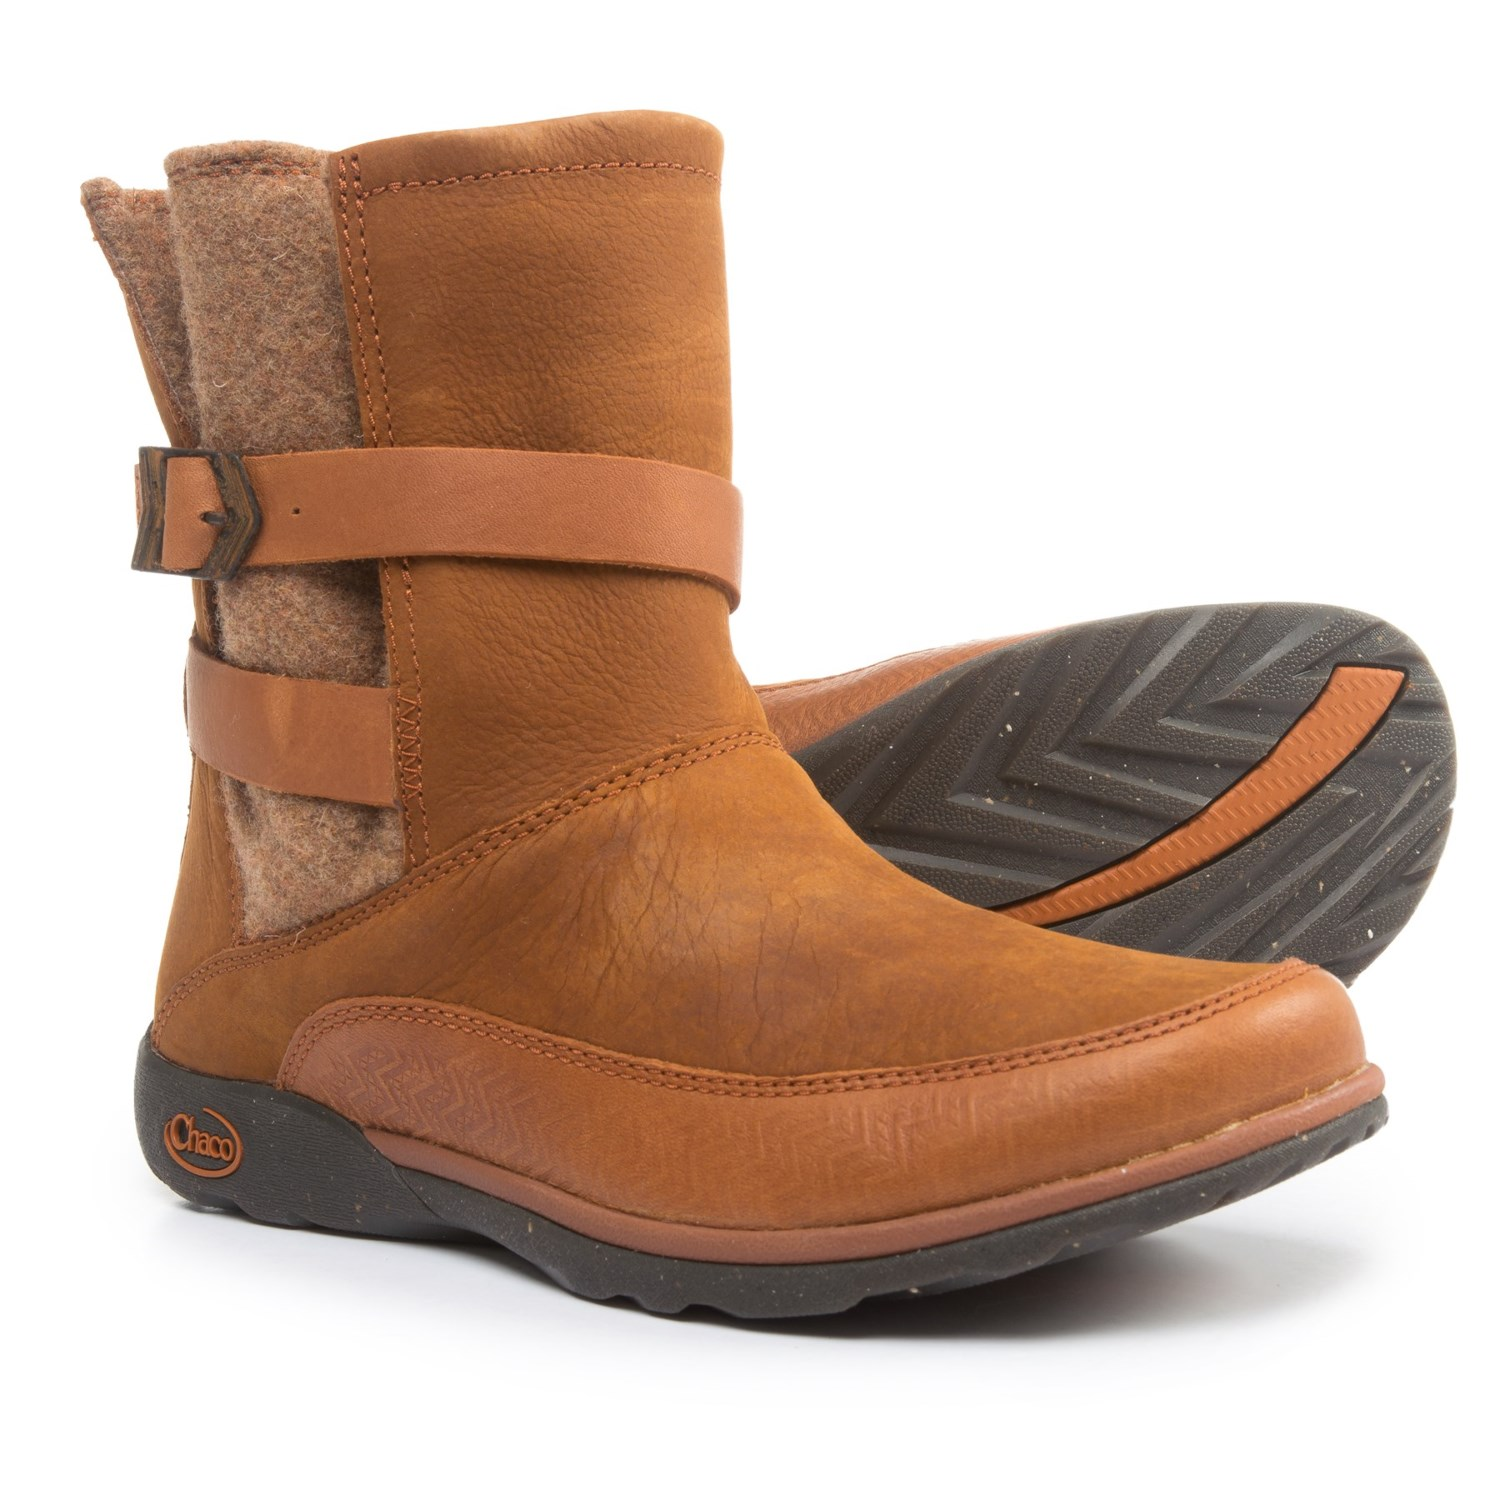 1b567316f23 Chaco Hopi Boots - Leather (For Women)